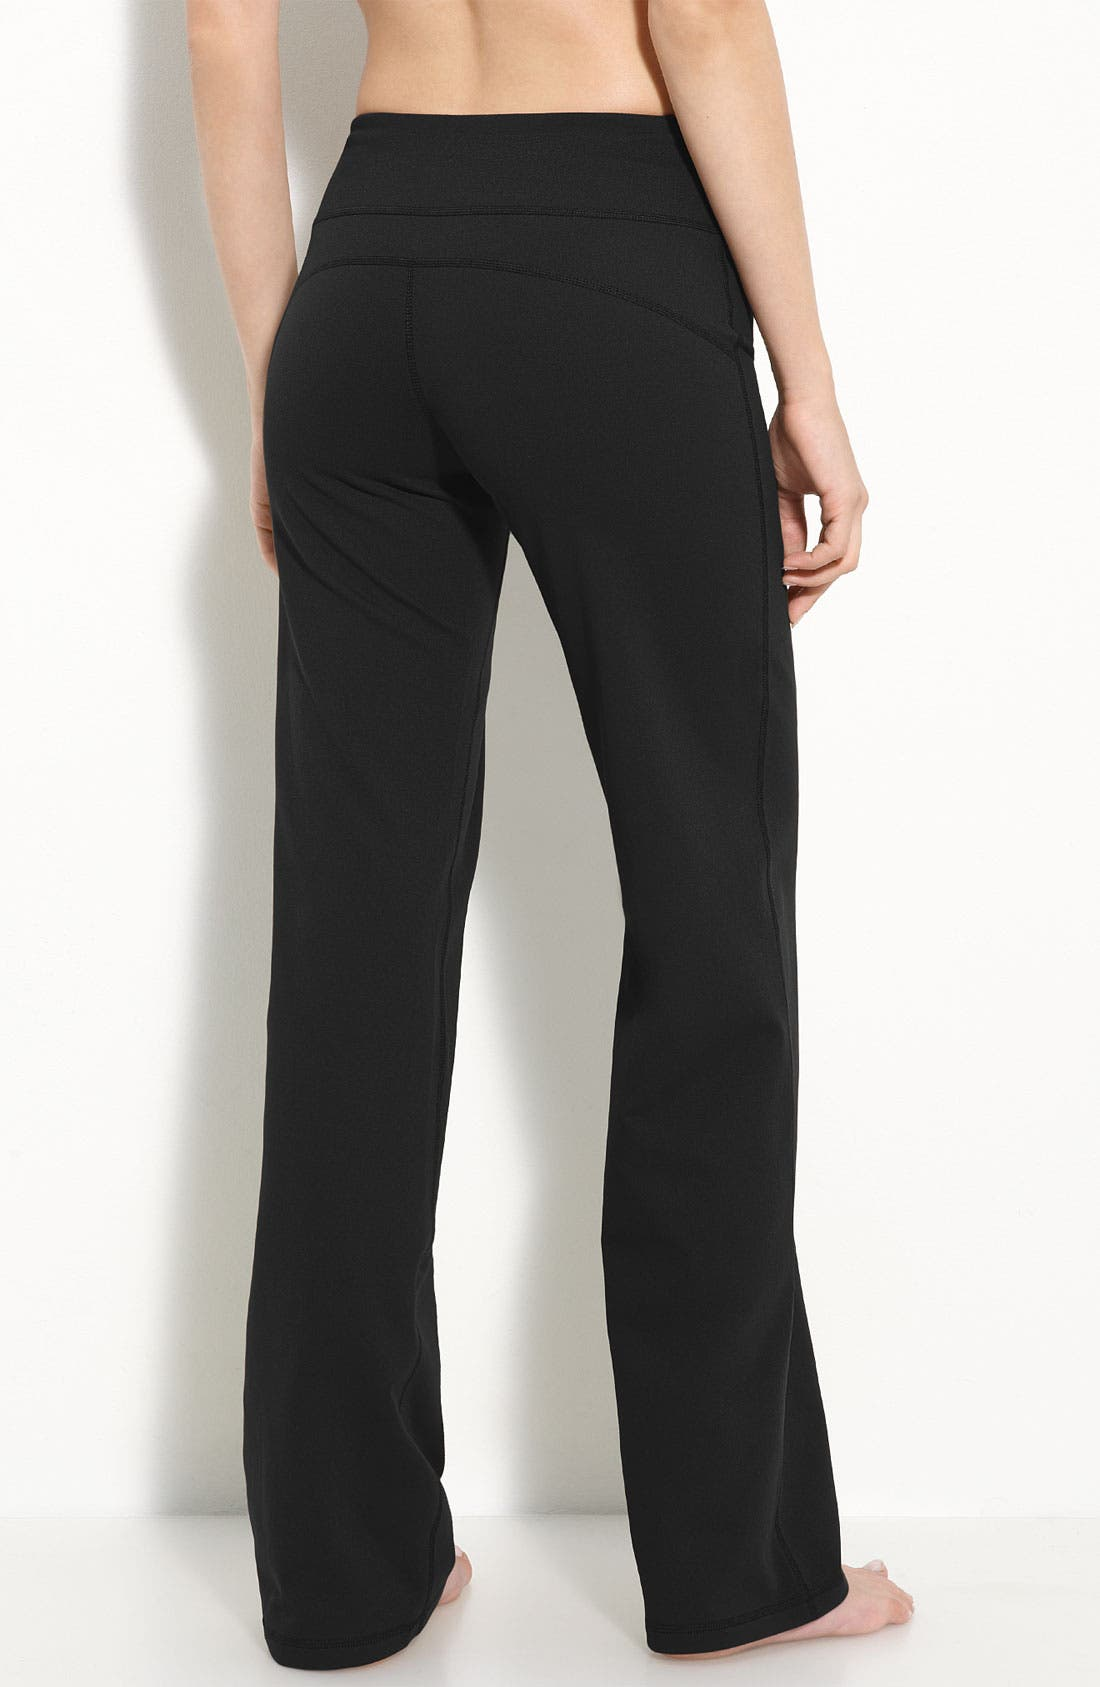 Alternate Image 1 Selected - Zella 'Balance' Wide Leg Pants